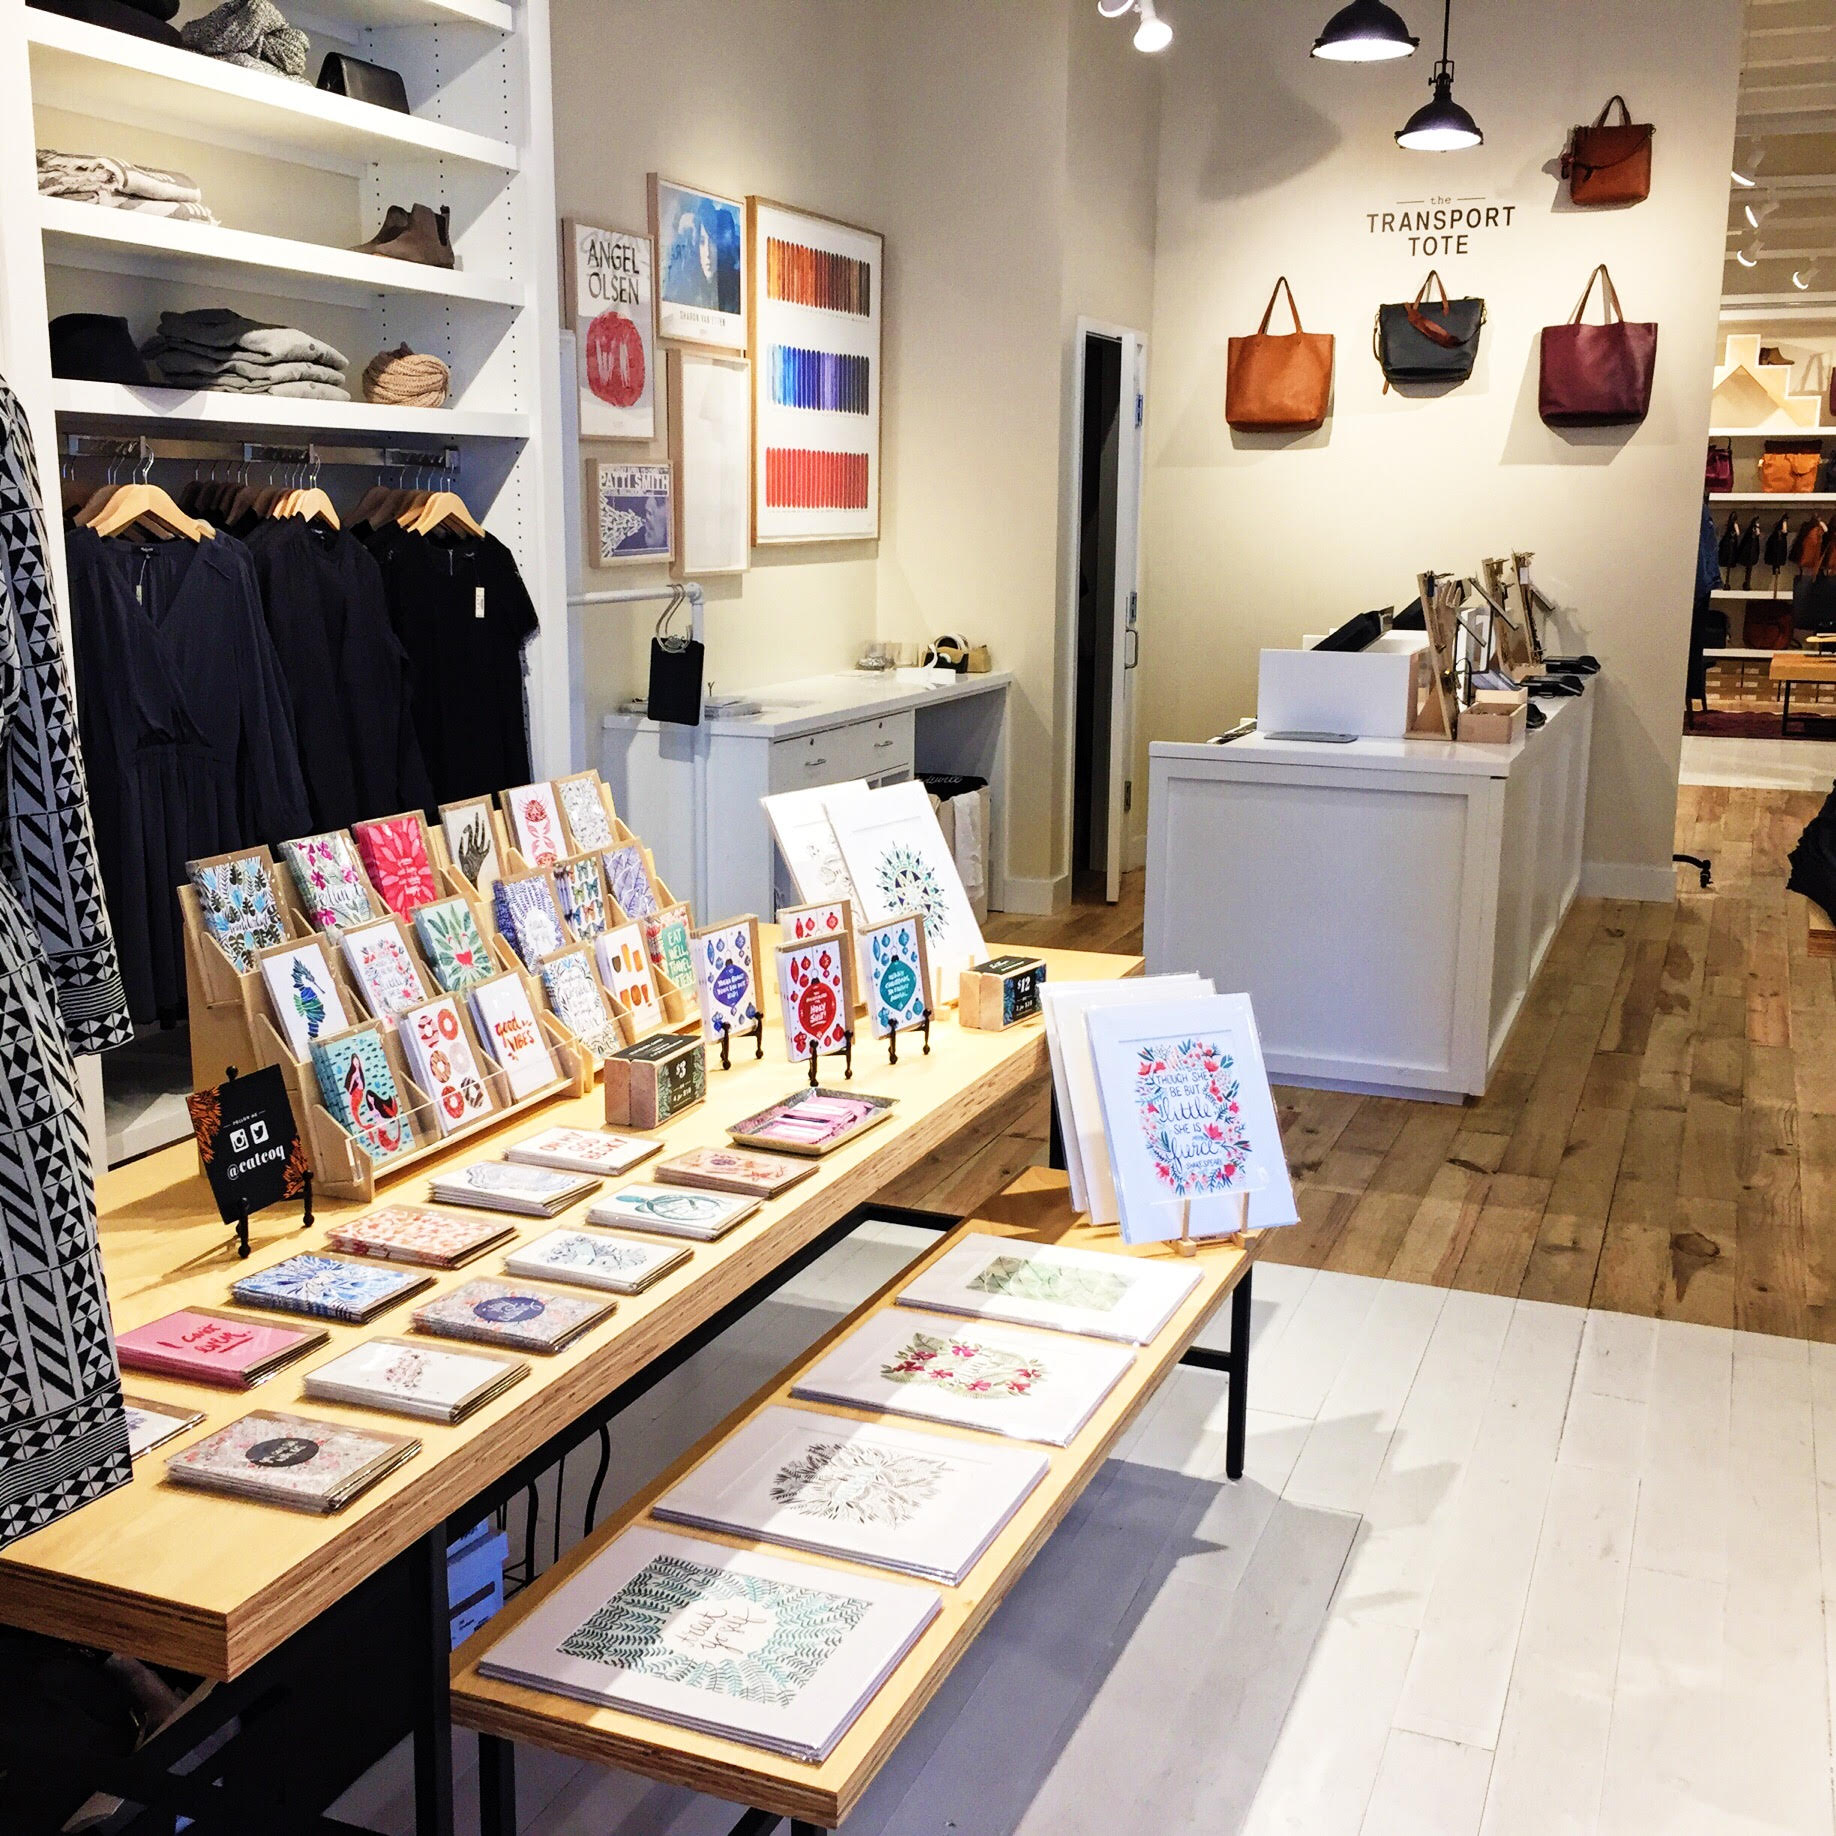 Madewell offered up a prime spot within their store– right in the front!